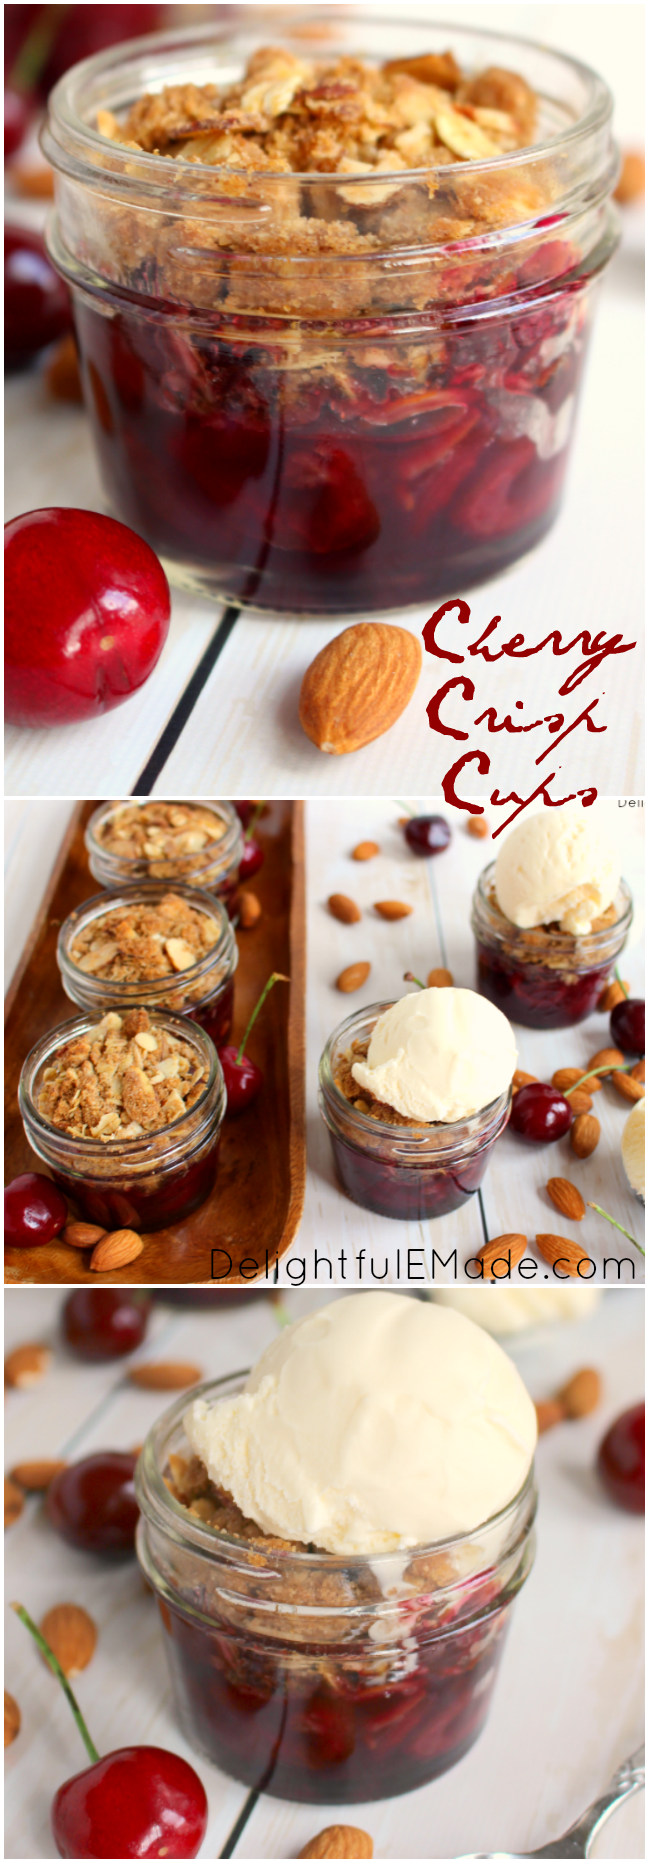 ! Fresh cherries are topped with a delicious almond crisp and baked ...